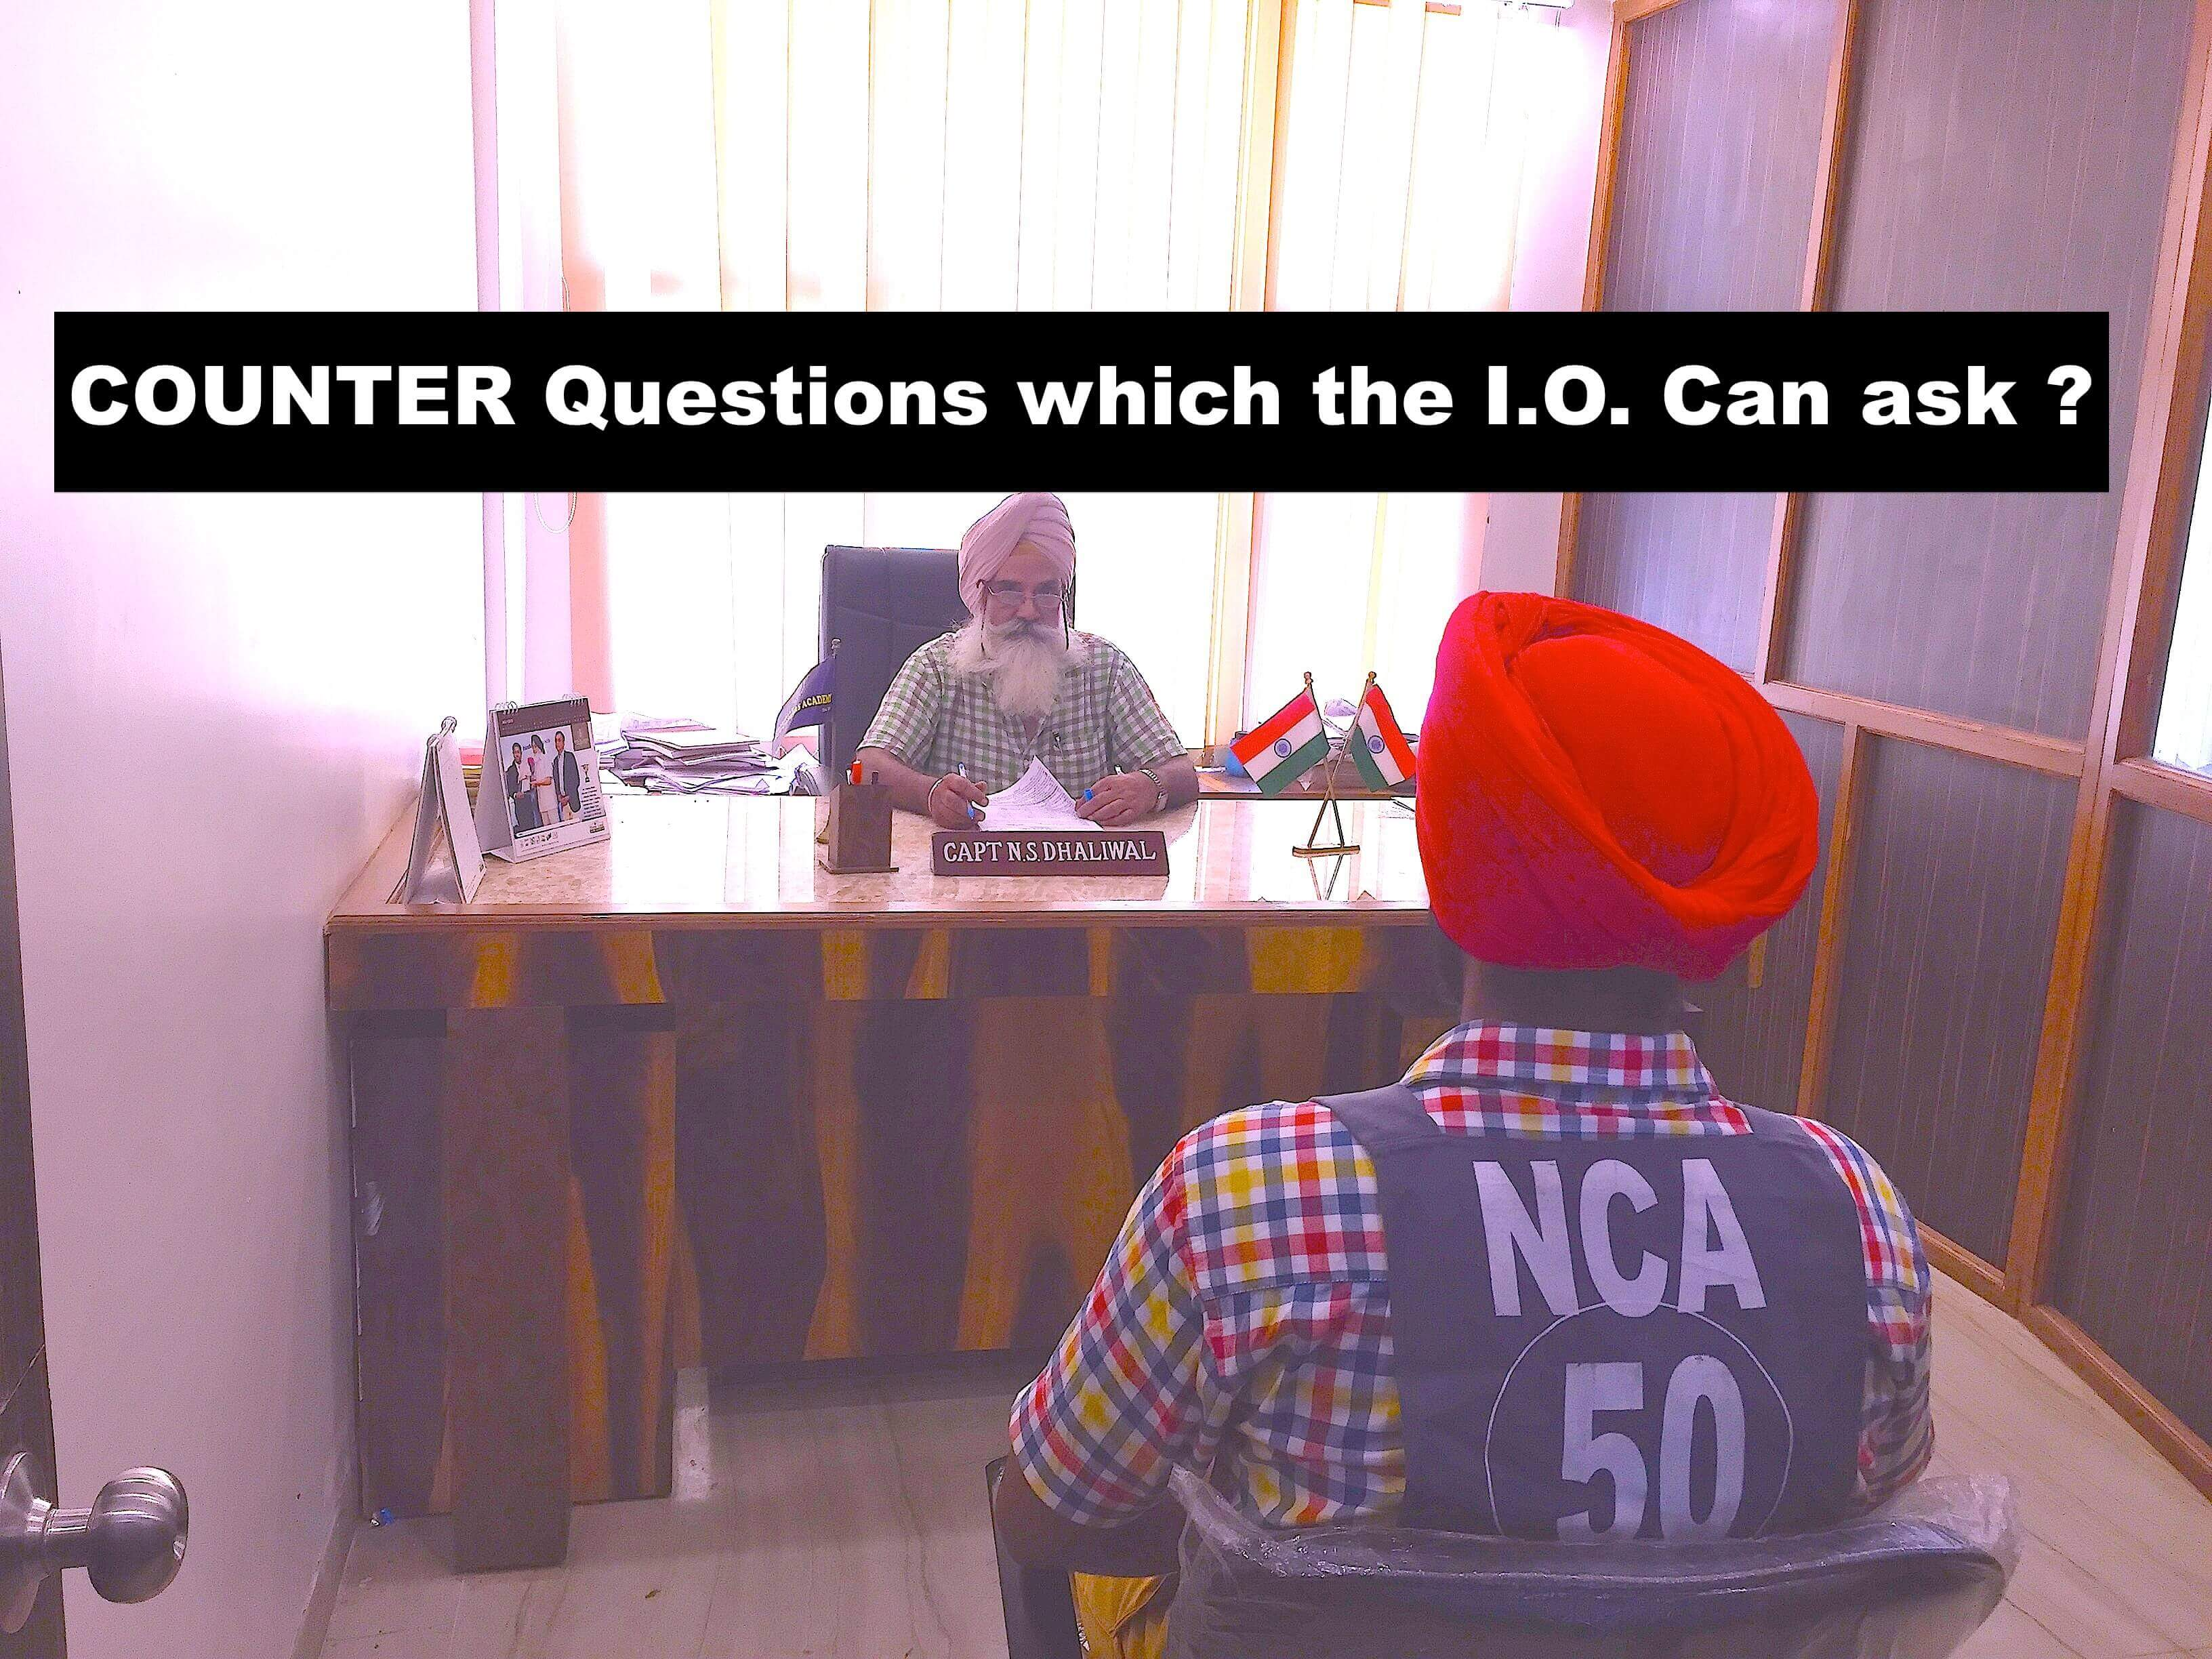 counter questions asked at the ssb by the i.o., Interview questins asked by the i.o.